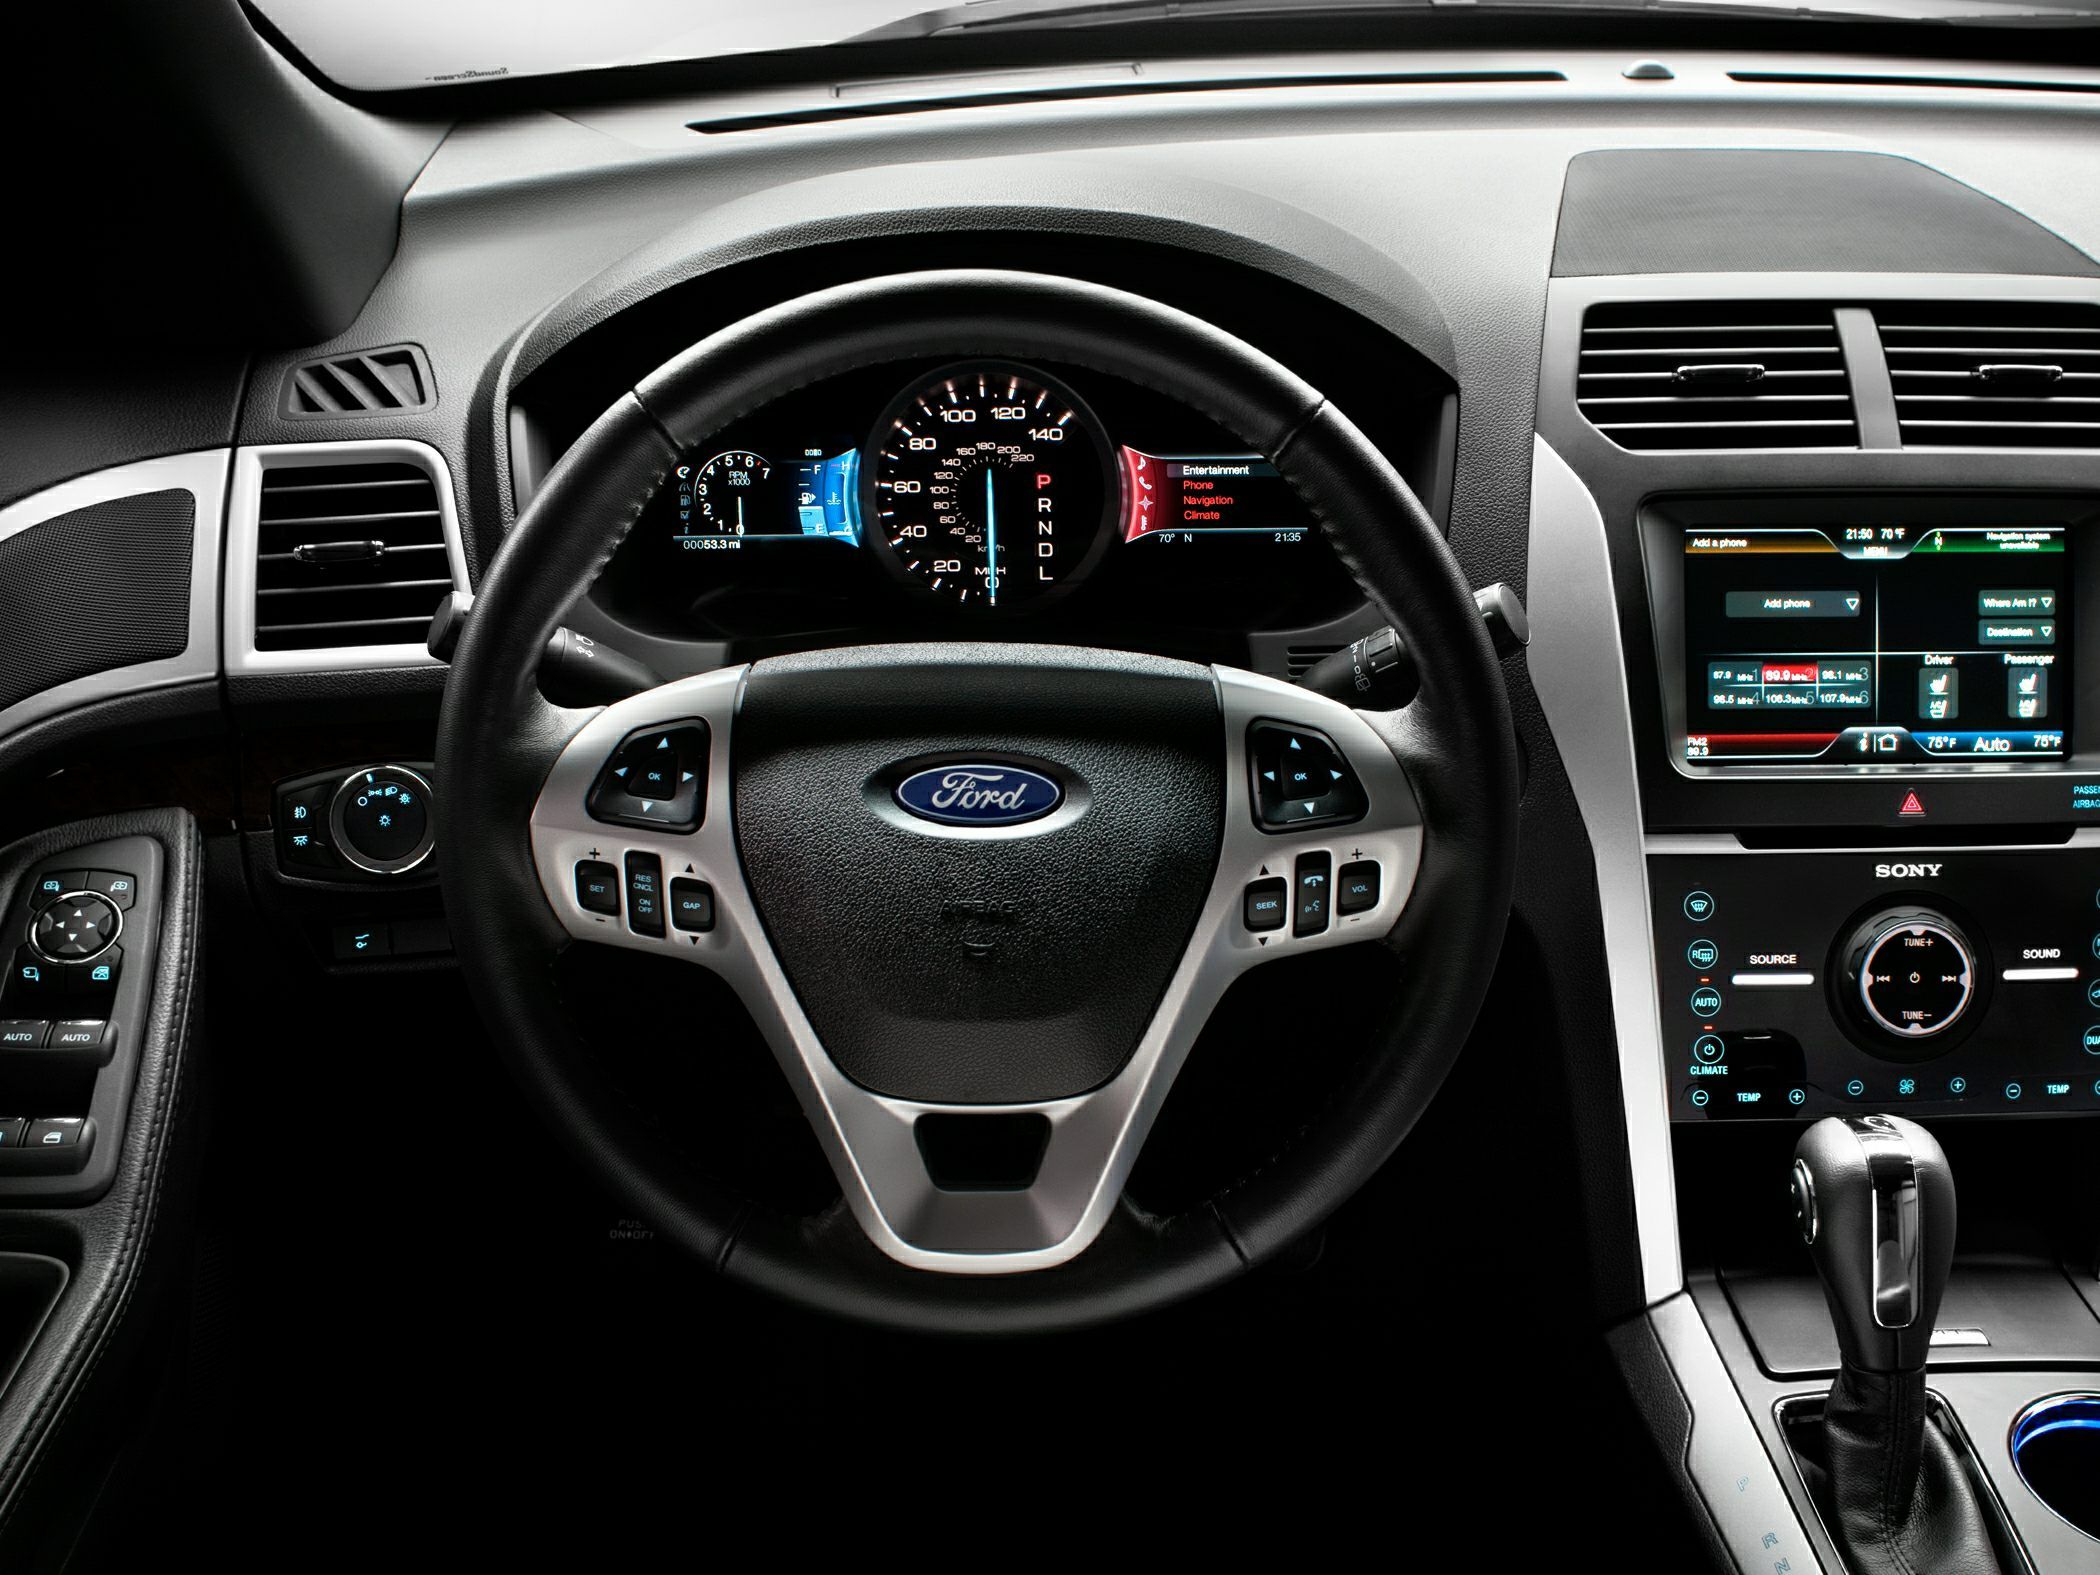 interior of ford explorer 2014 - New 2015 Ford Explorer Black Color